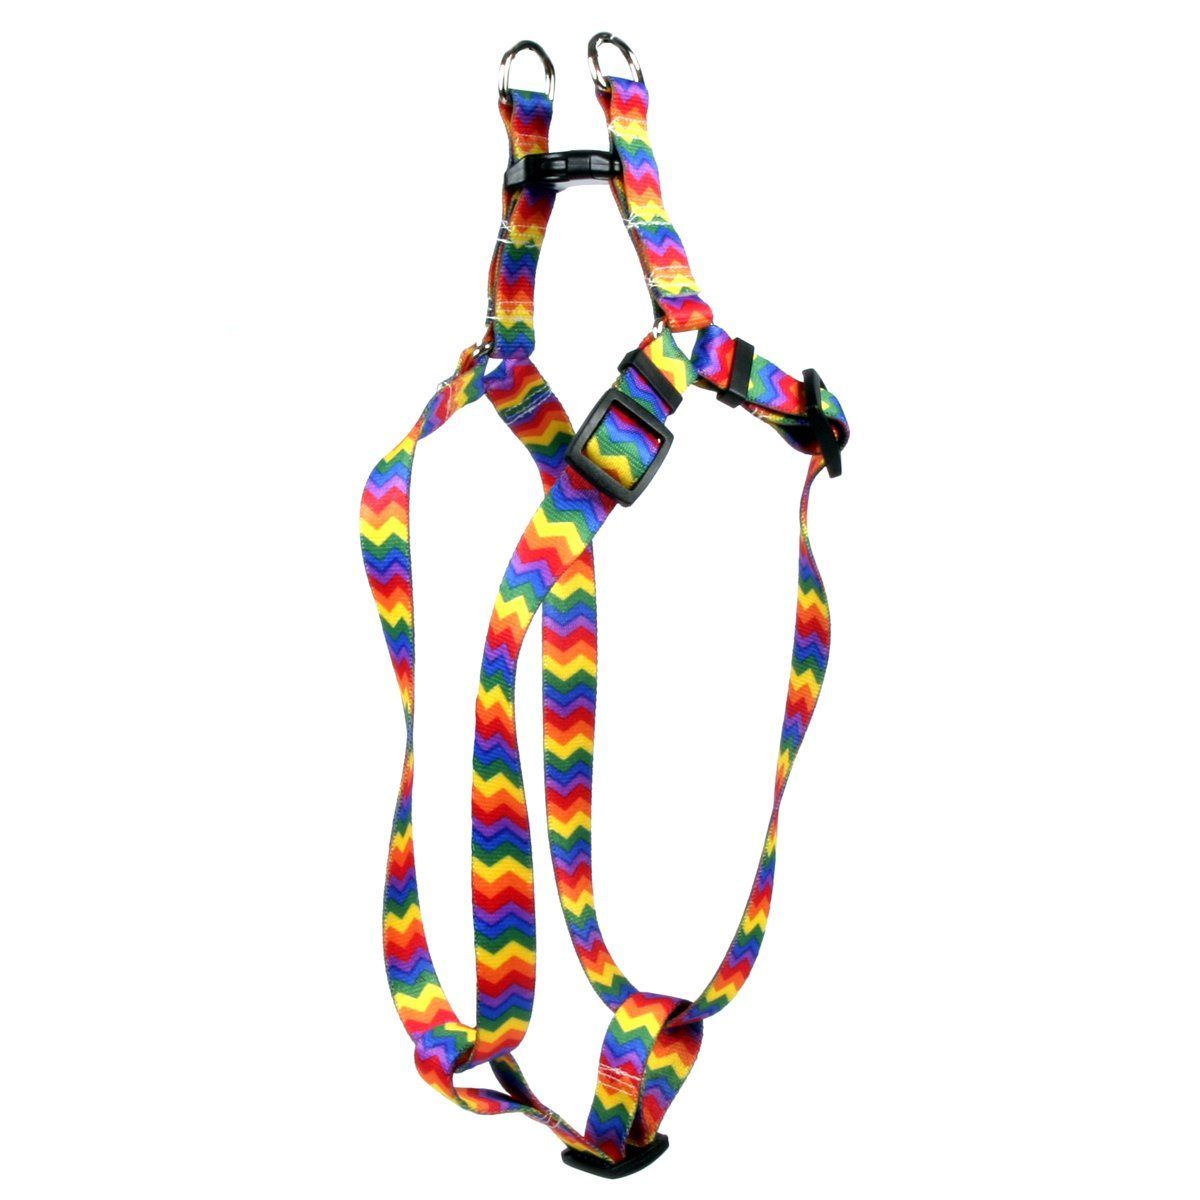 Mirage Soft Mesh Breathable Dog Puppy Pet Harness All Sizes Rainbow of Colours